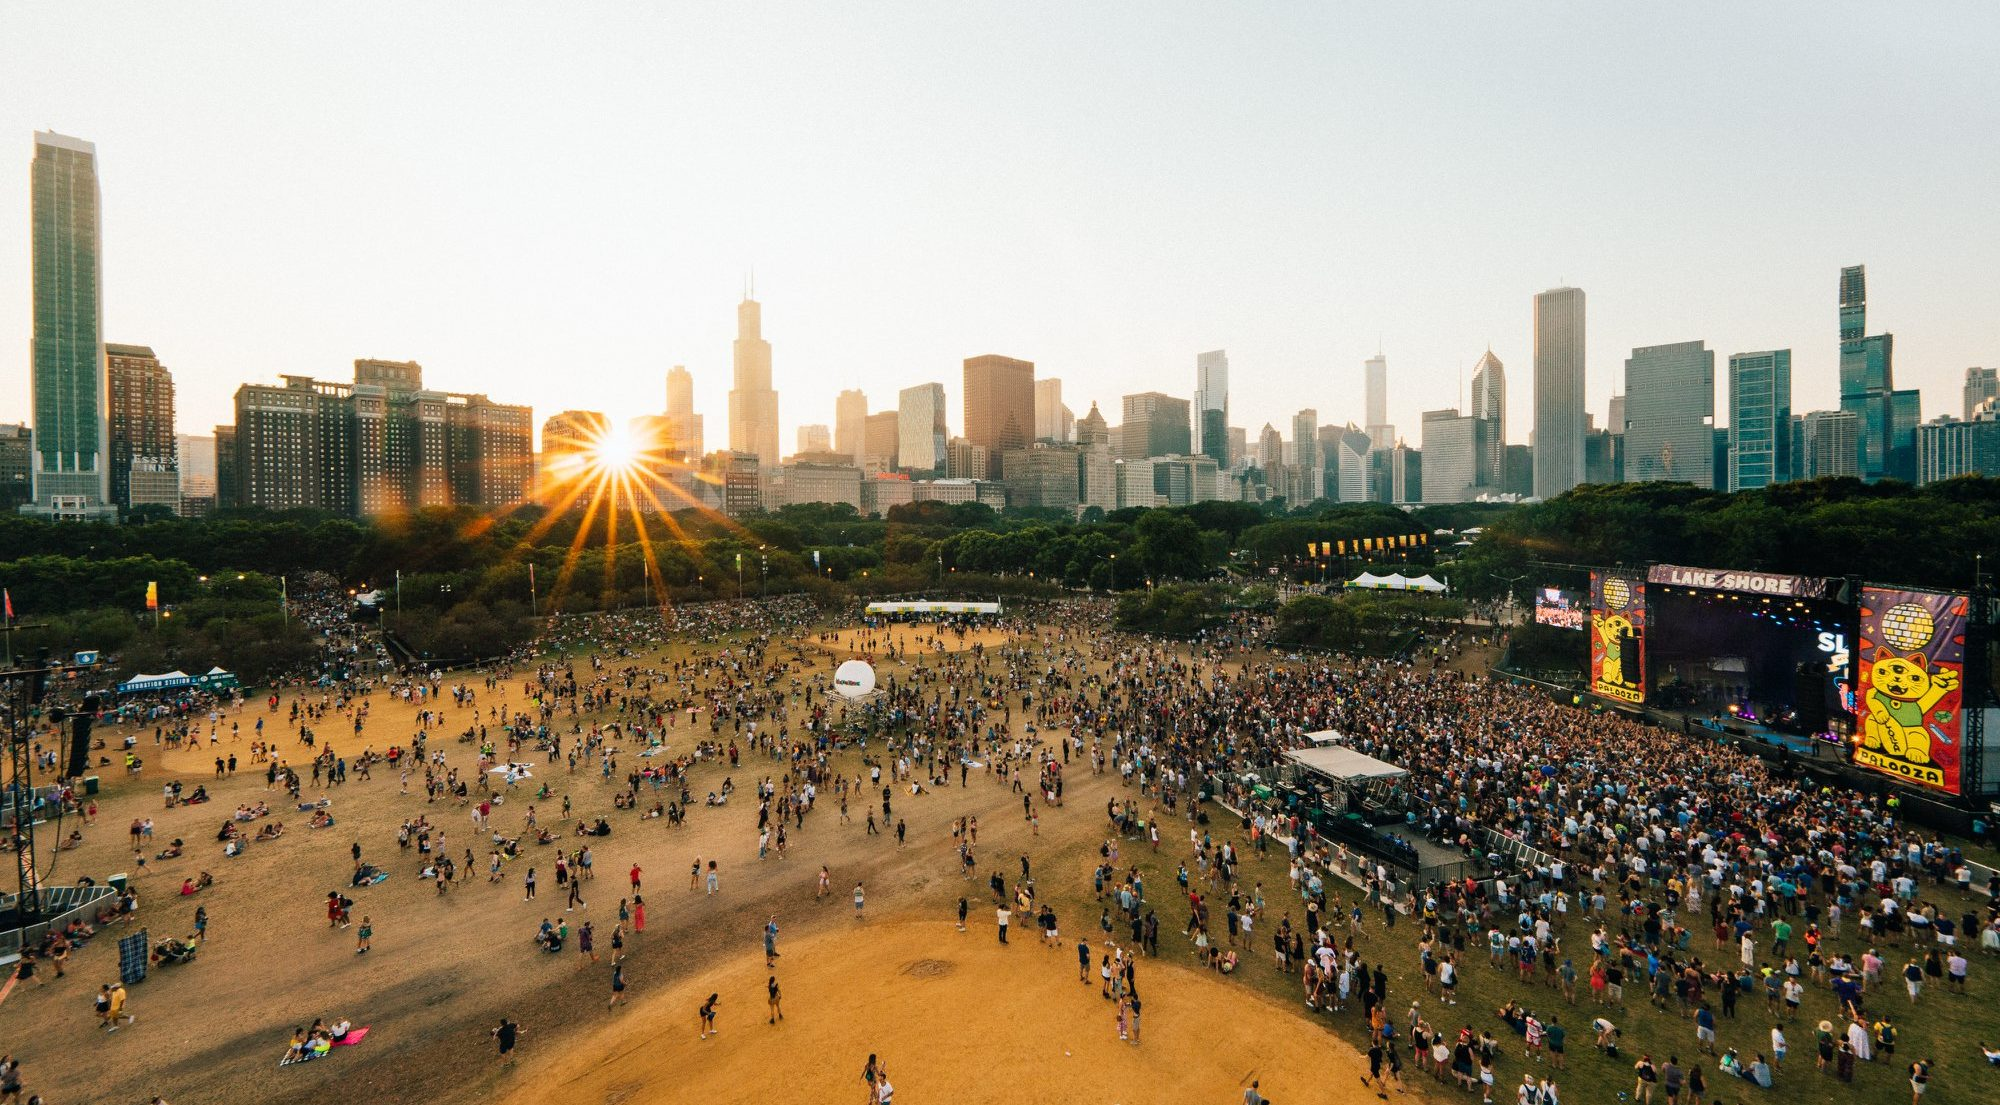 Live Music May Not Return Until 2022, Says Lollapalooza Co-Founder